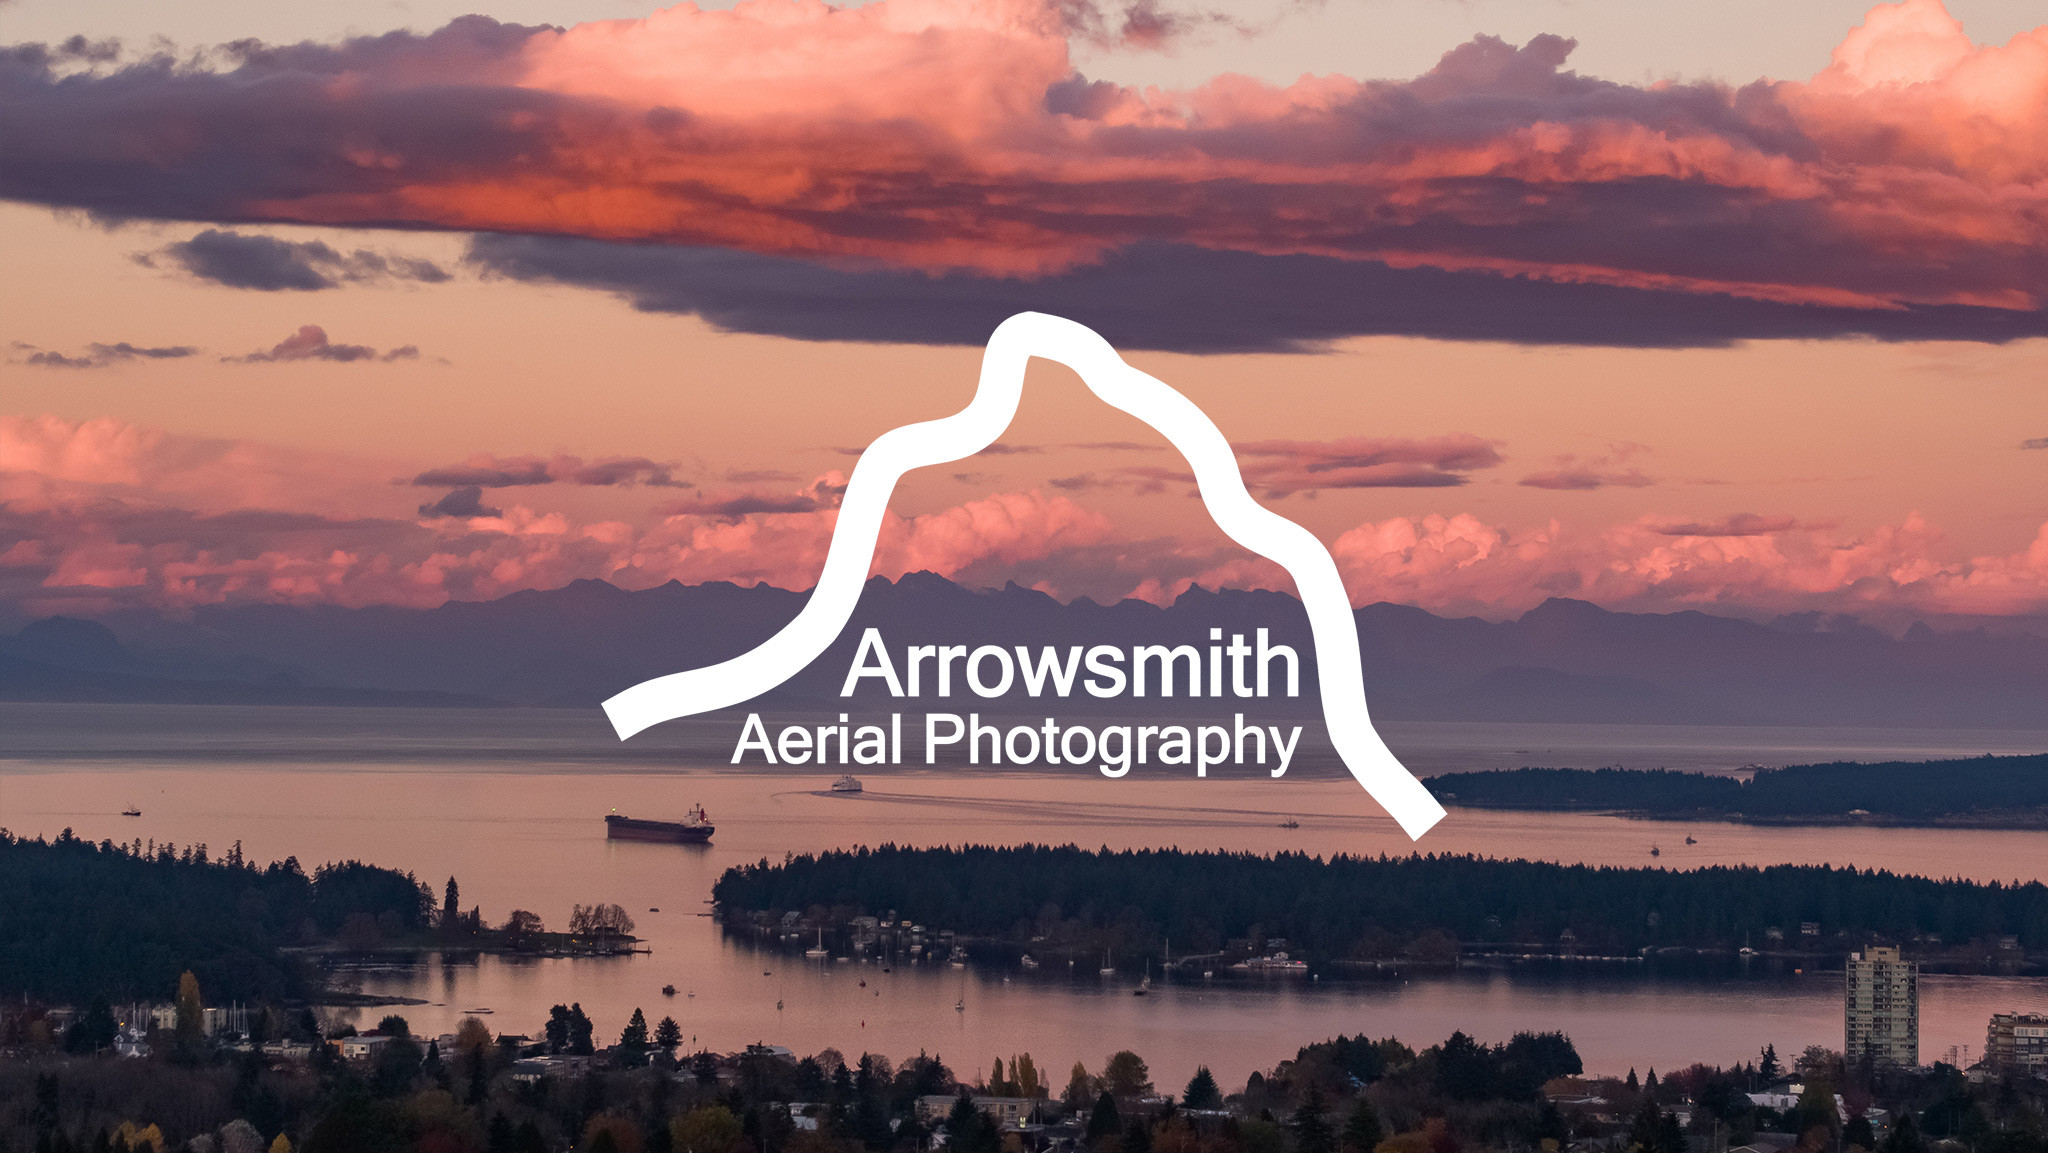 Arrowsmith Aerial Photography logo